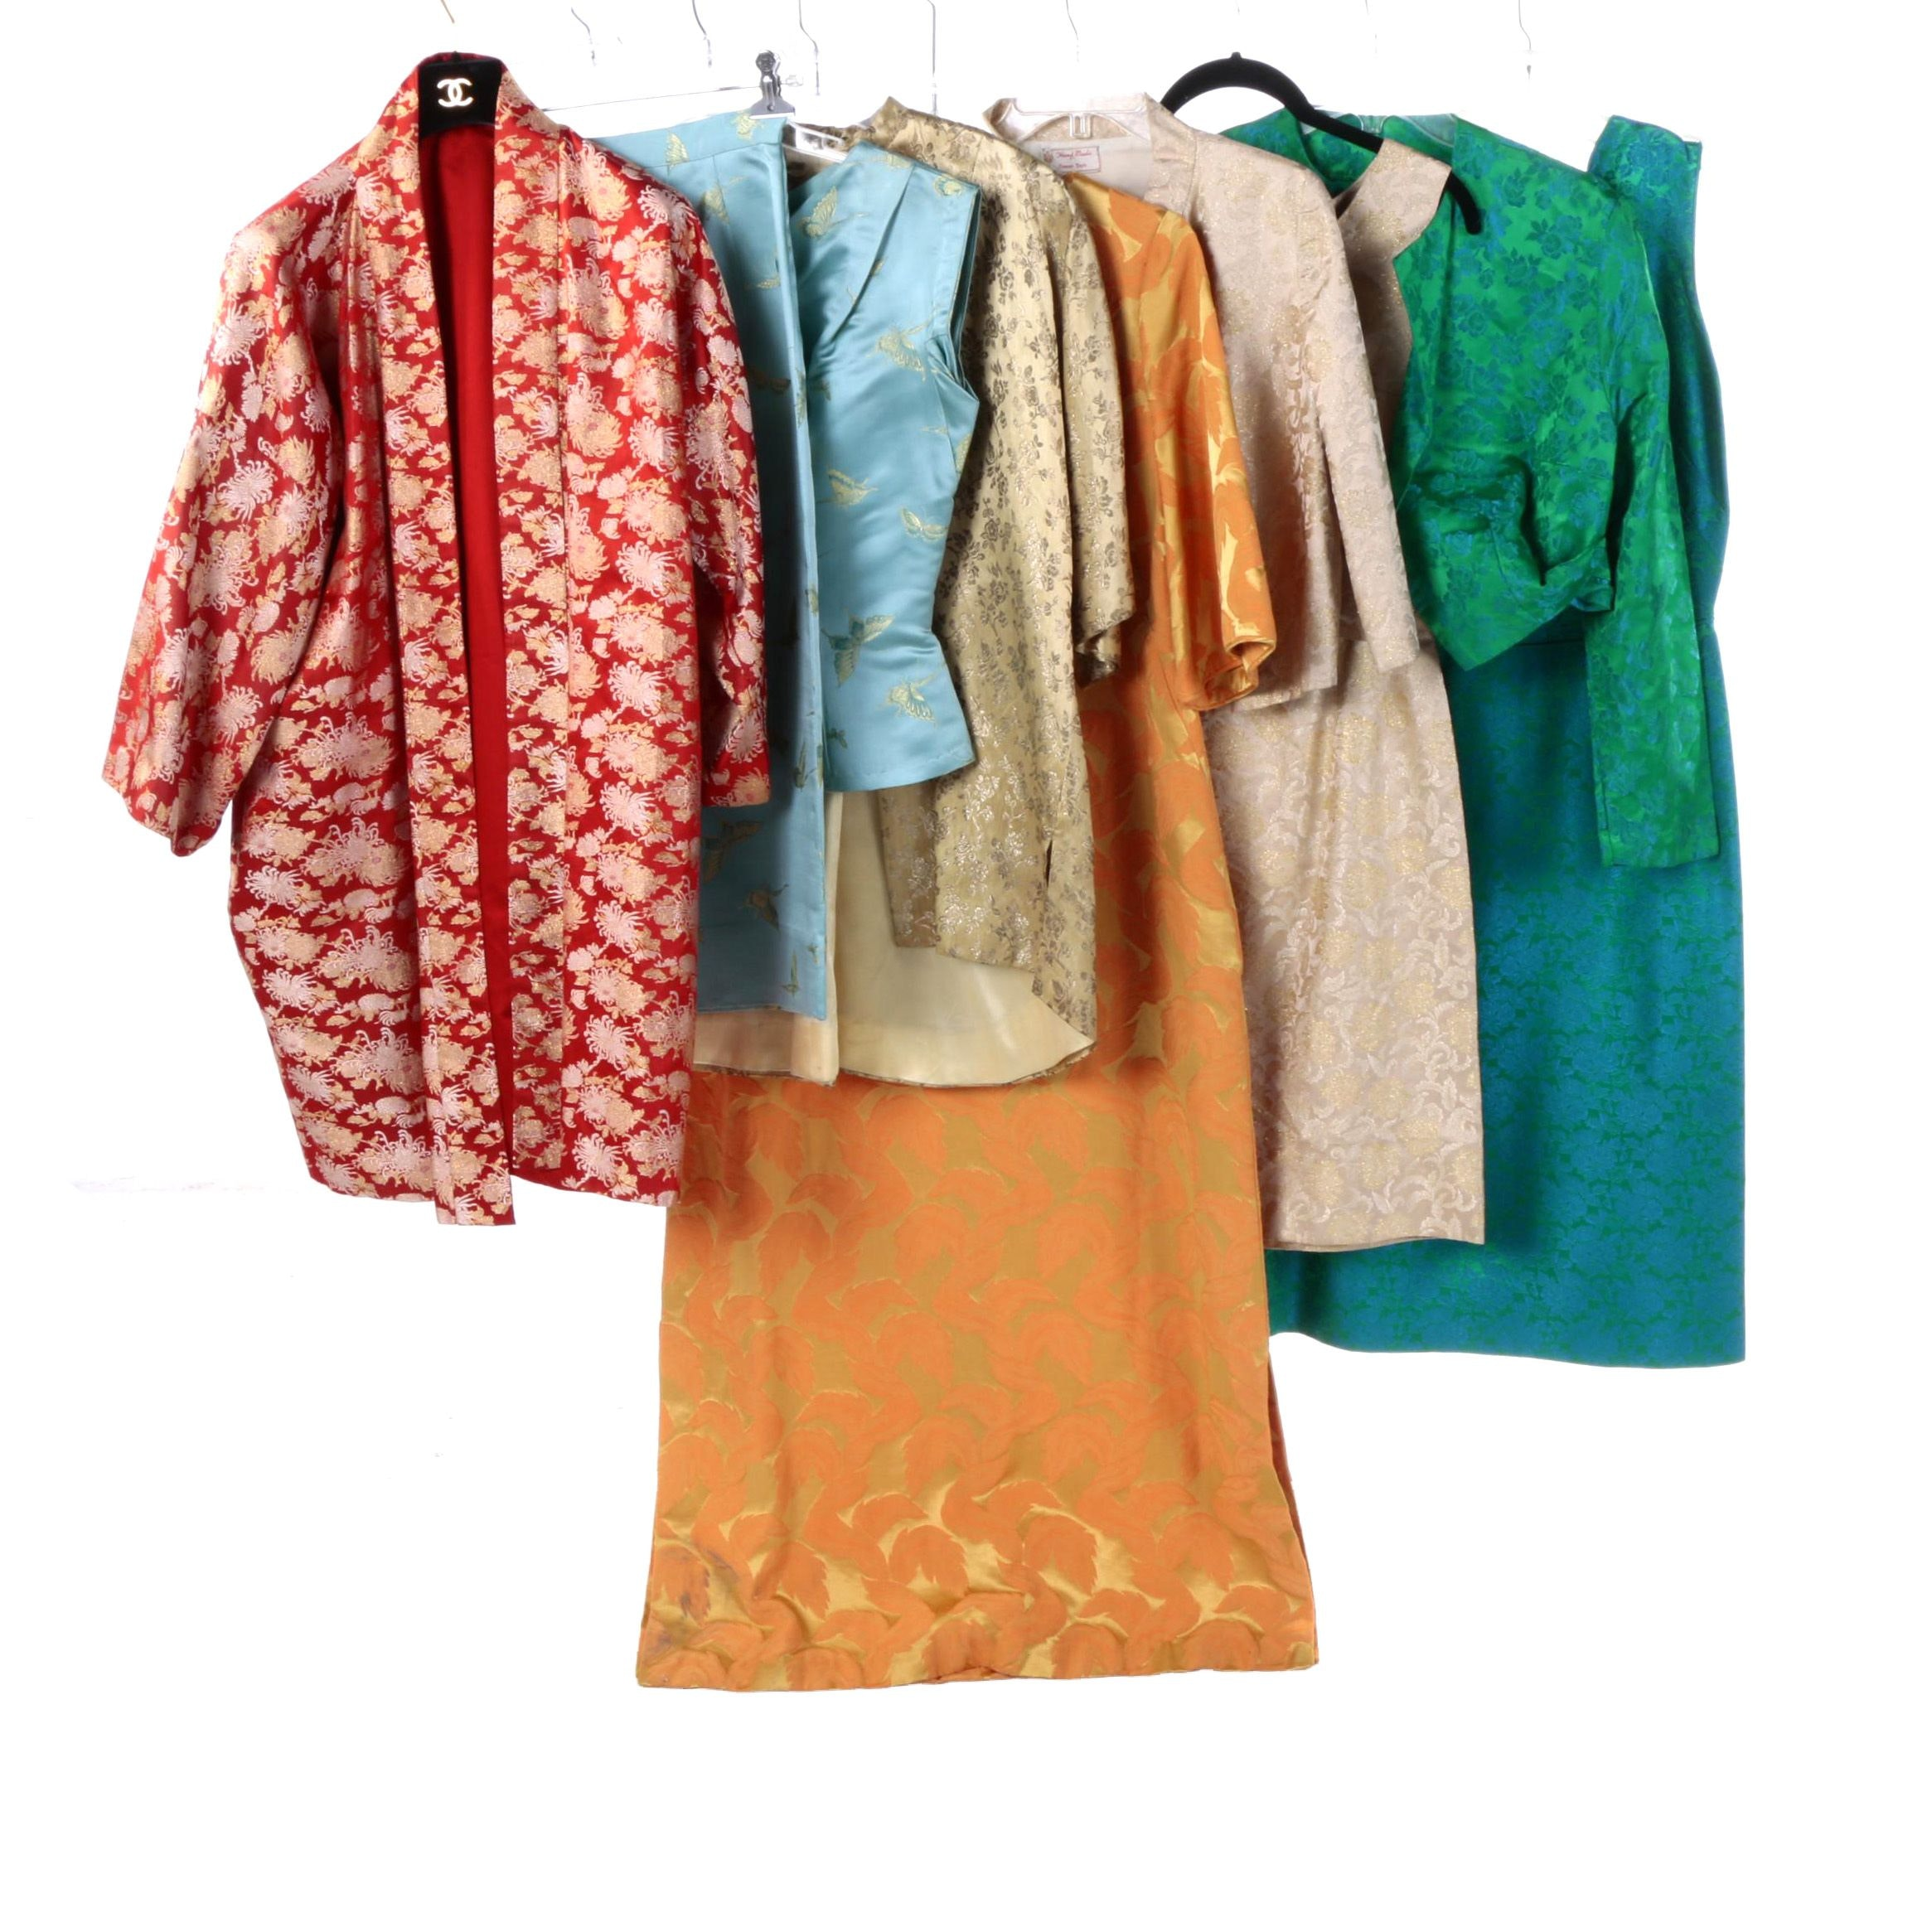 Vintage Asian-Style Brocade Dresses and Jackets